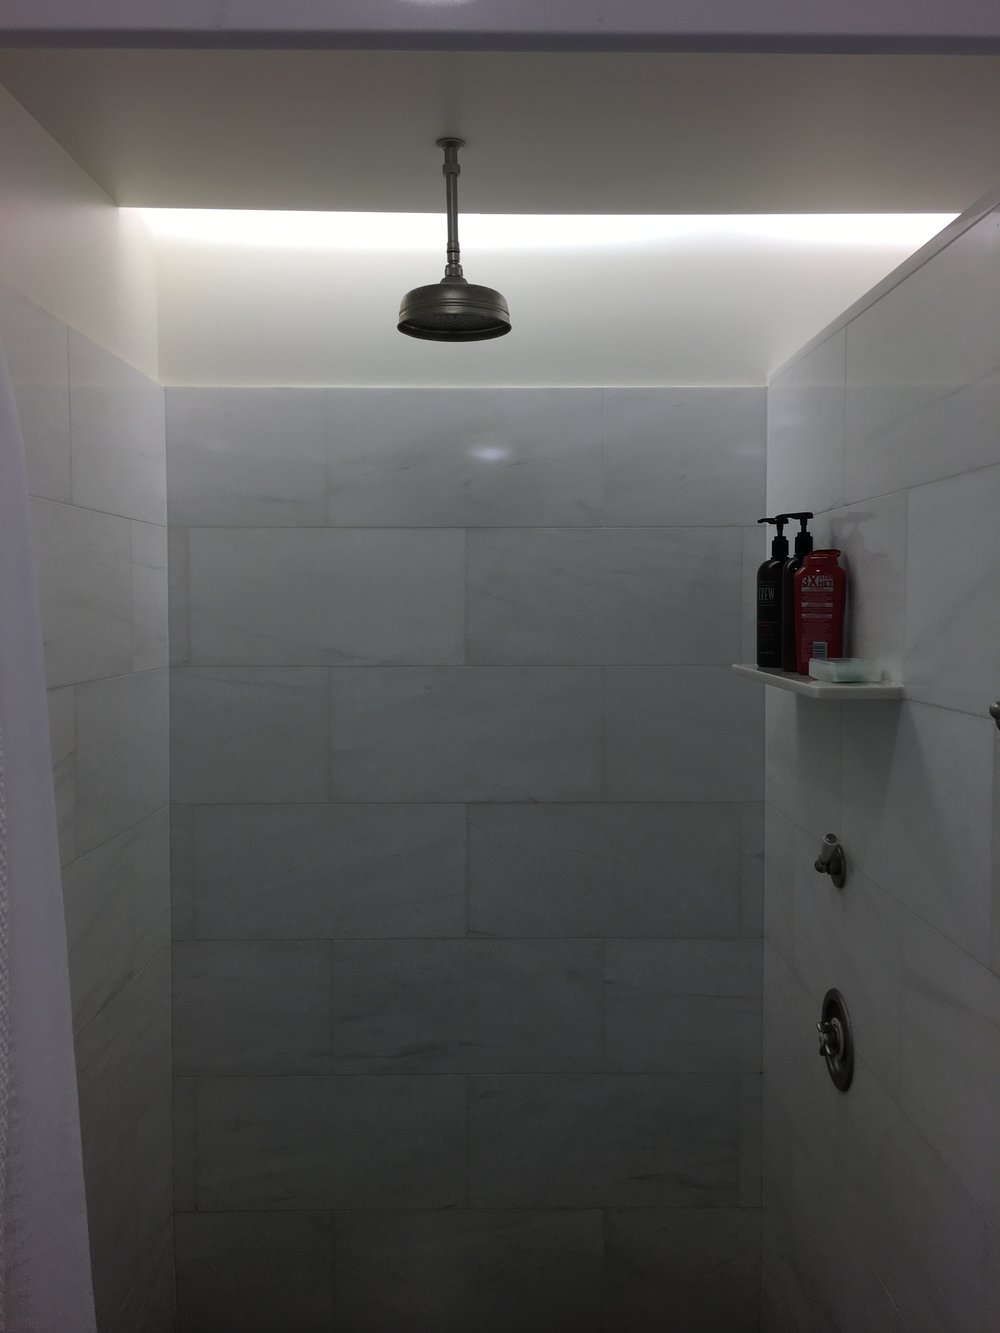 The epic showers at Shoreacres